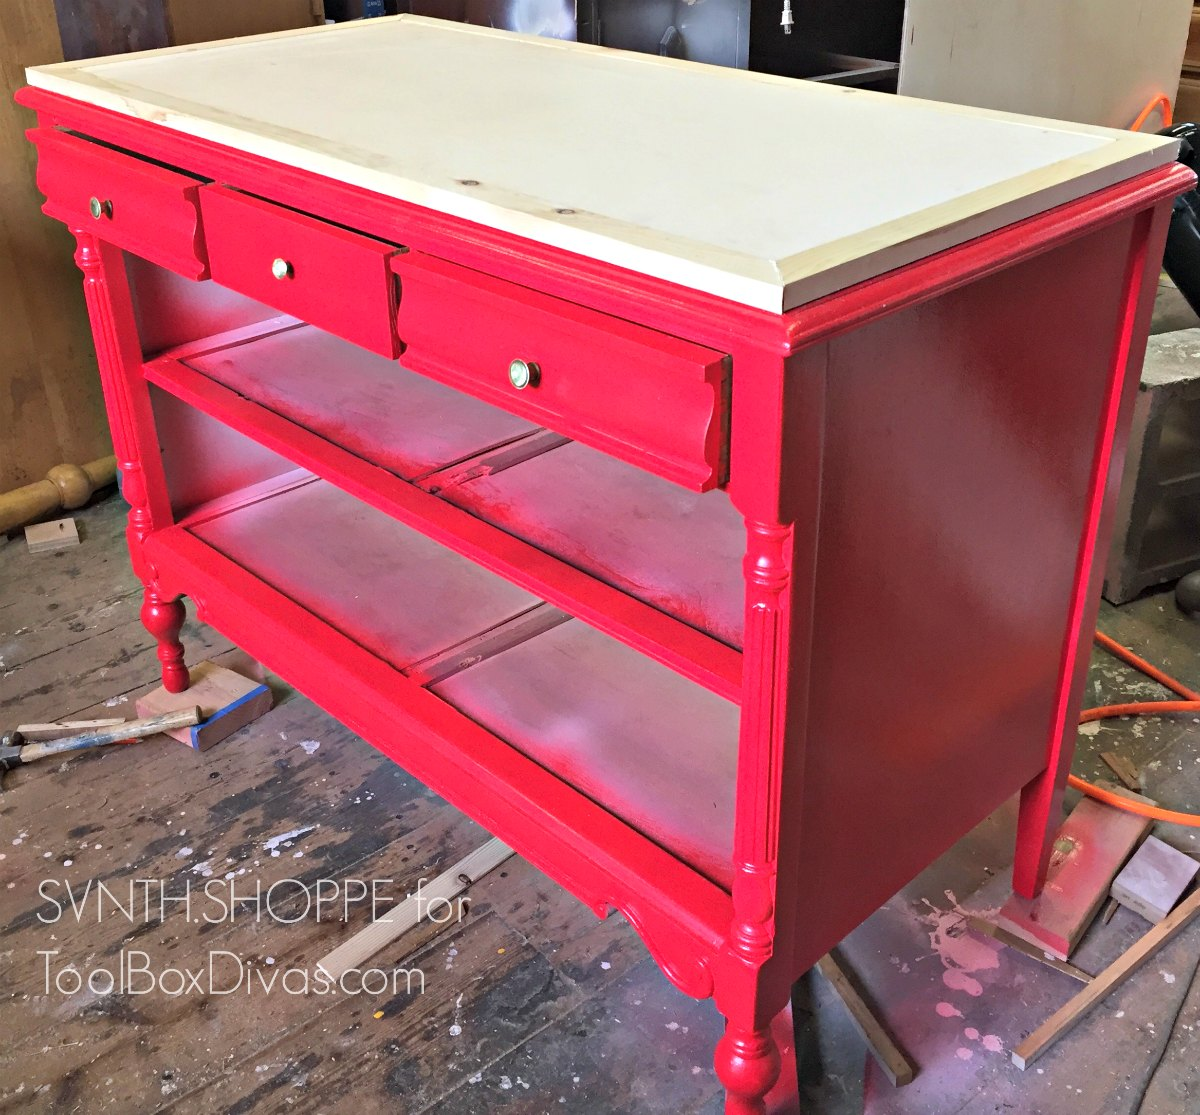 All Dressed Up - Turn An Old Dresser Into A Kitchen Island